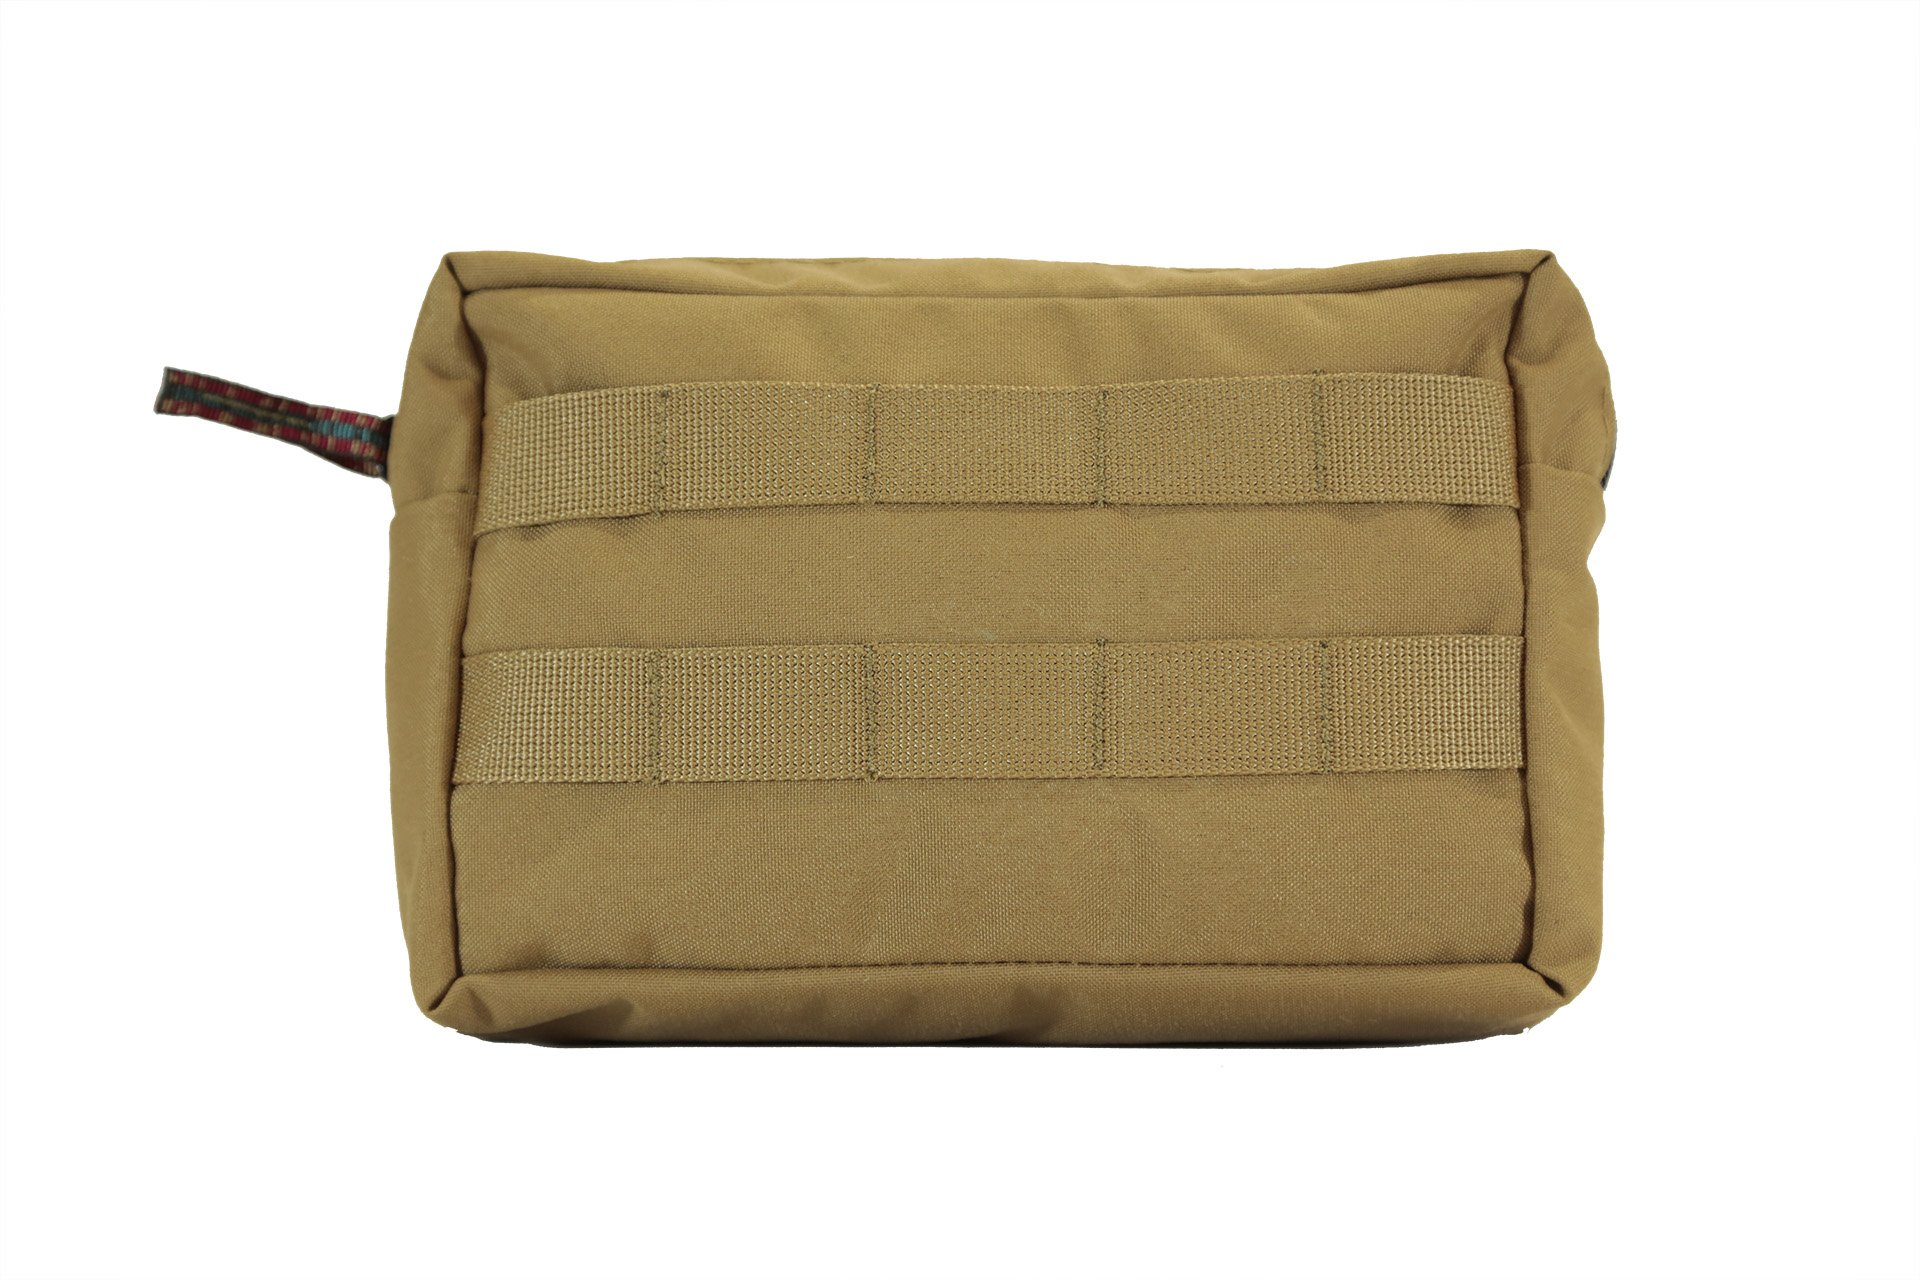 Medium General Purpose GP MOLLE Pouch 5X8X3 (Coyote)   Made In USA, Overland Off-Road Car Camping Gear